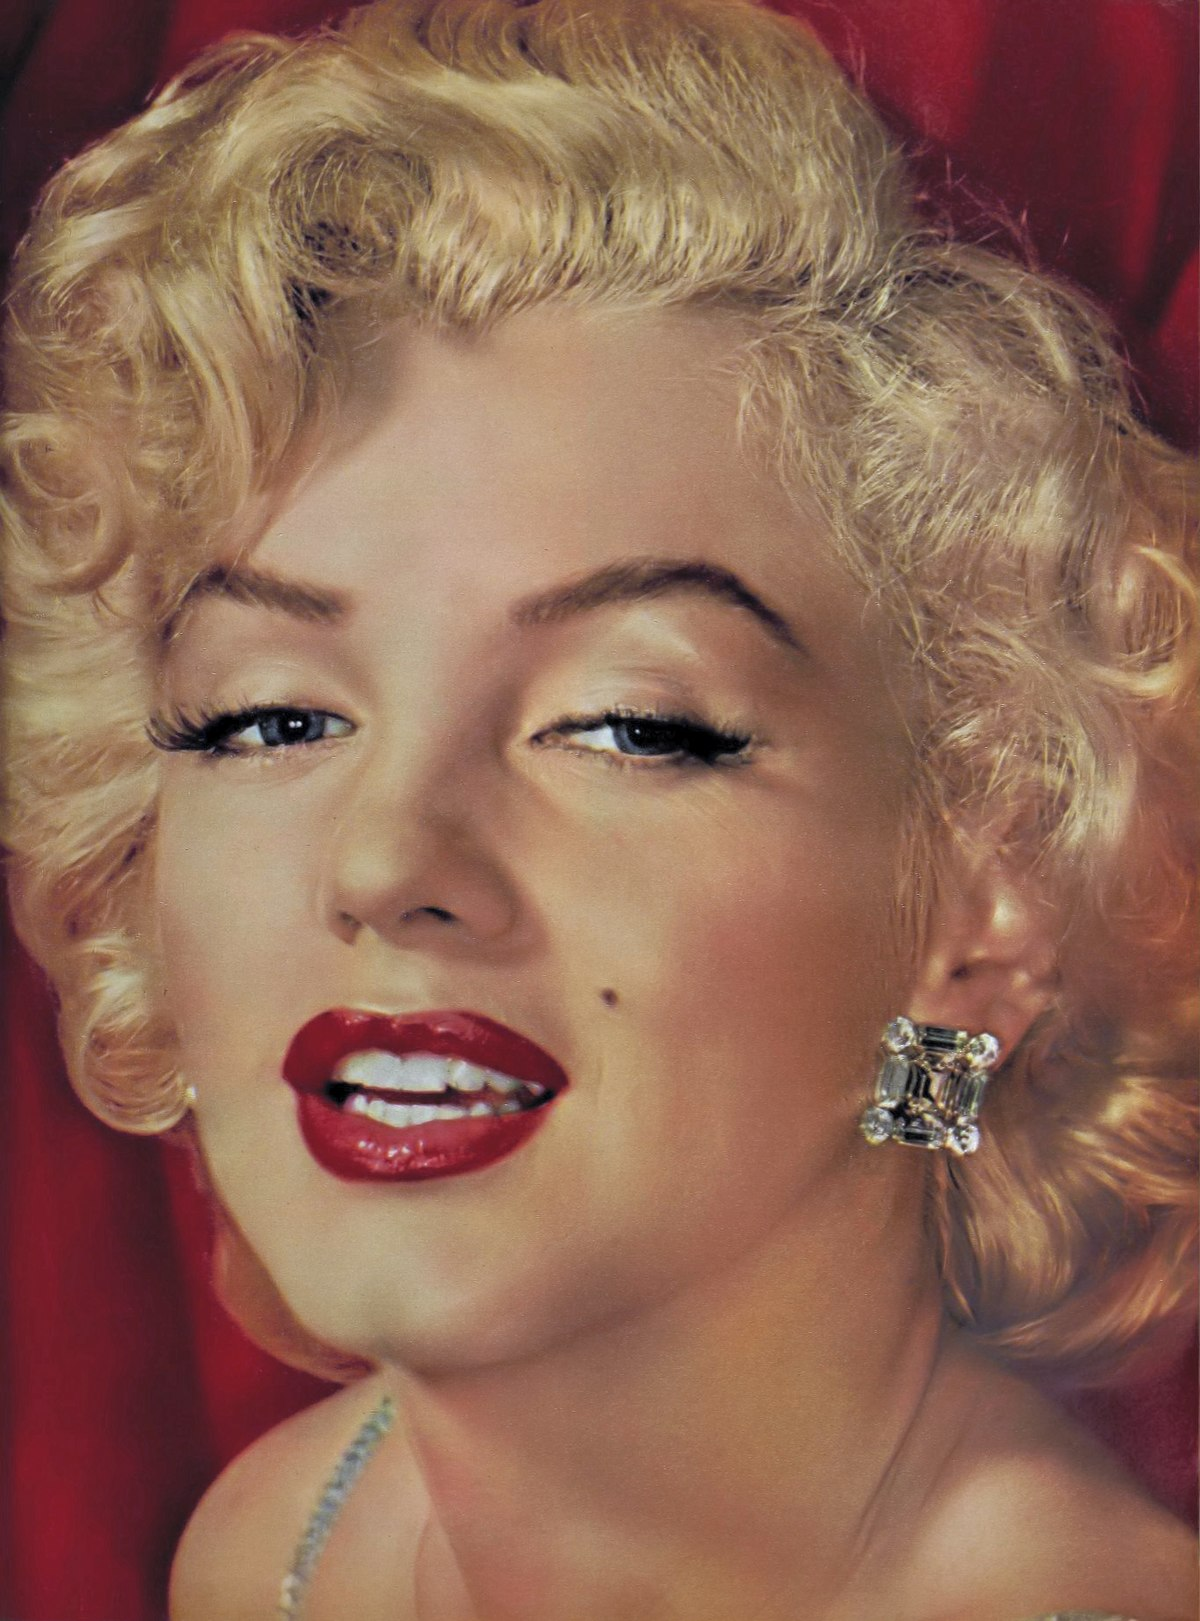 Marilyn monroe wikipedia le encyclopedia libere voltagebd Gallery